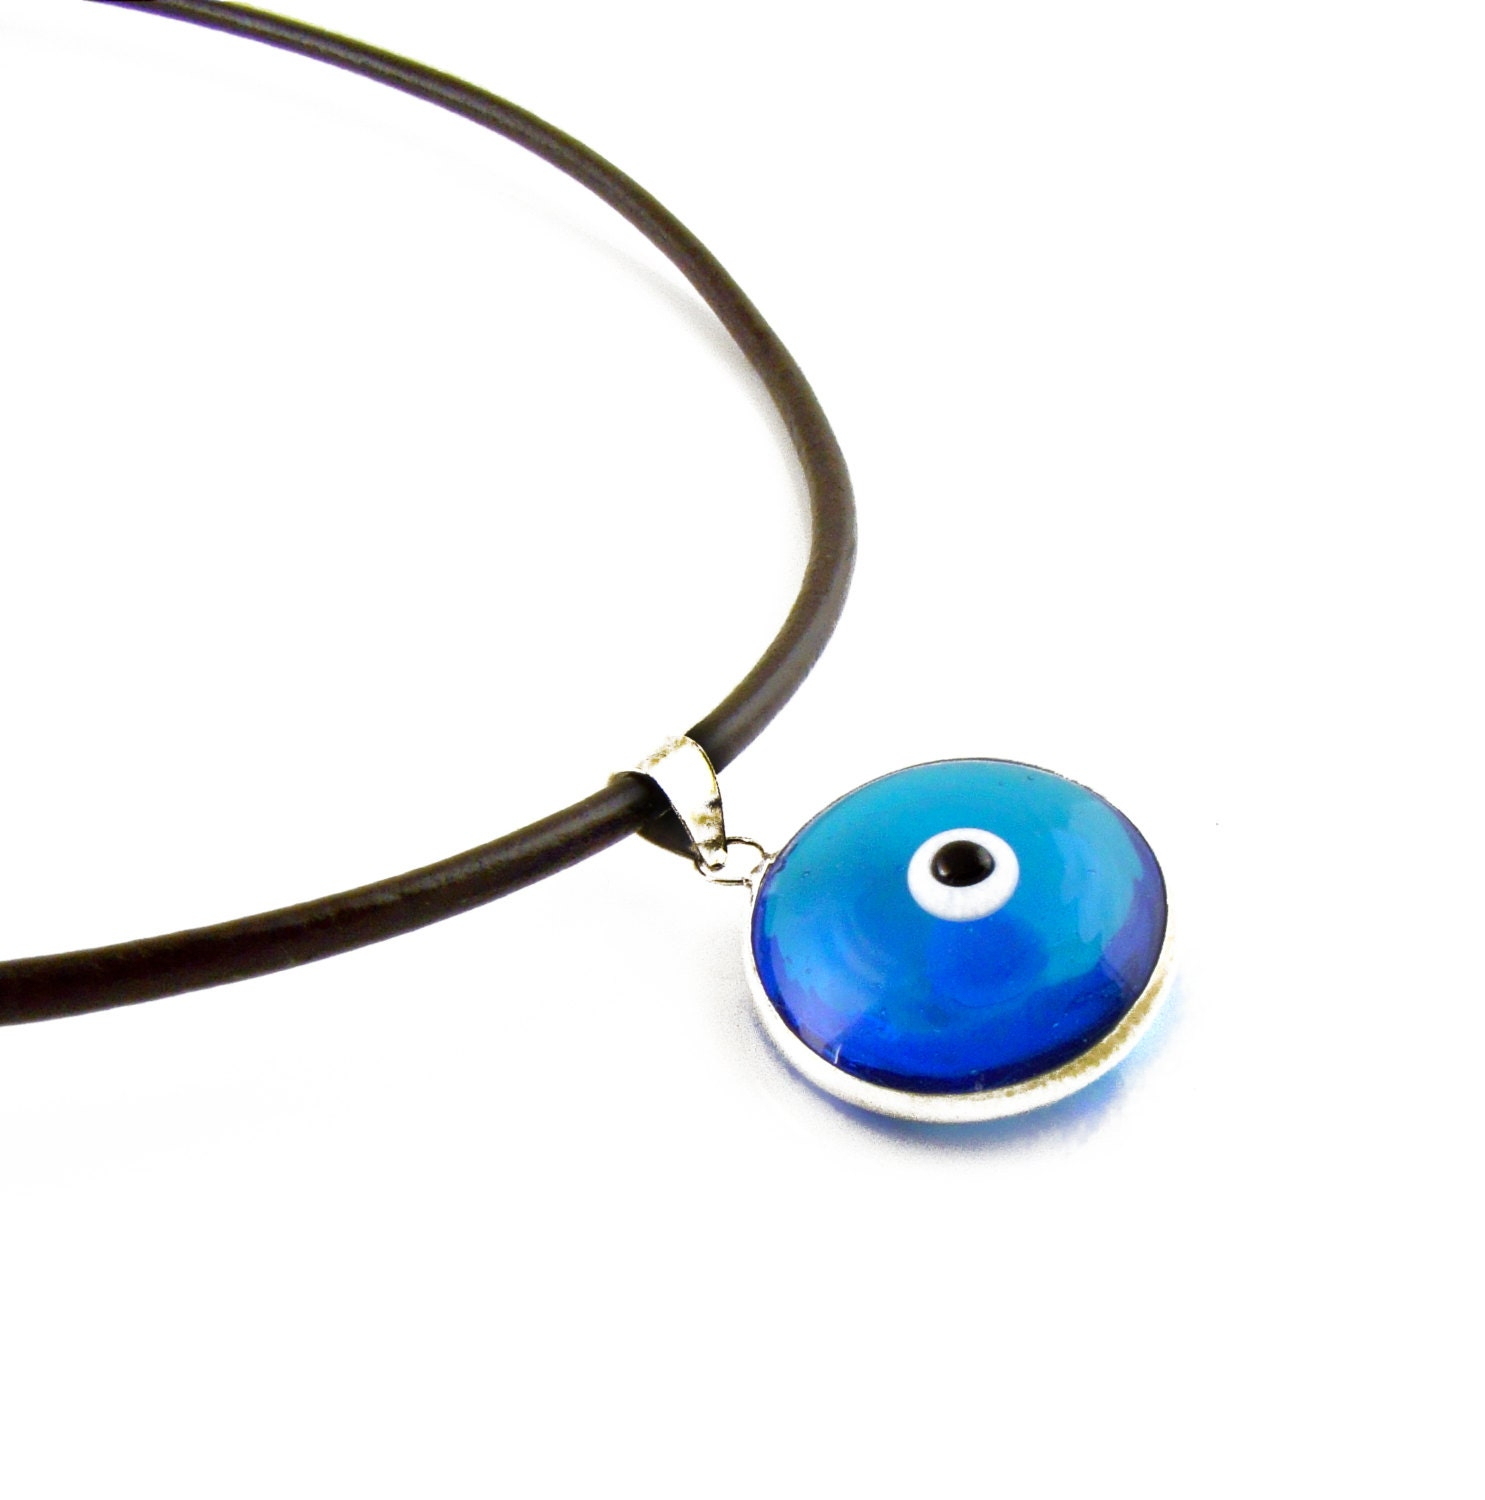 n needle jewelry handmade san pendant necklace eye francisco sugden in usa ca fine products tura